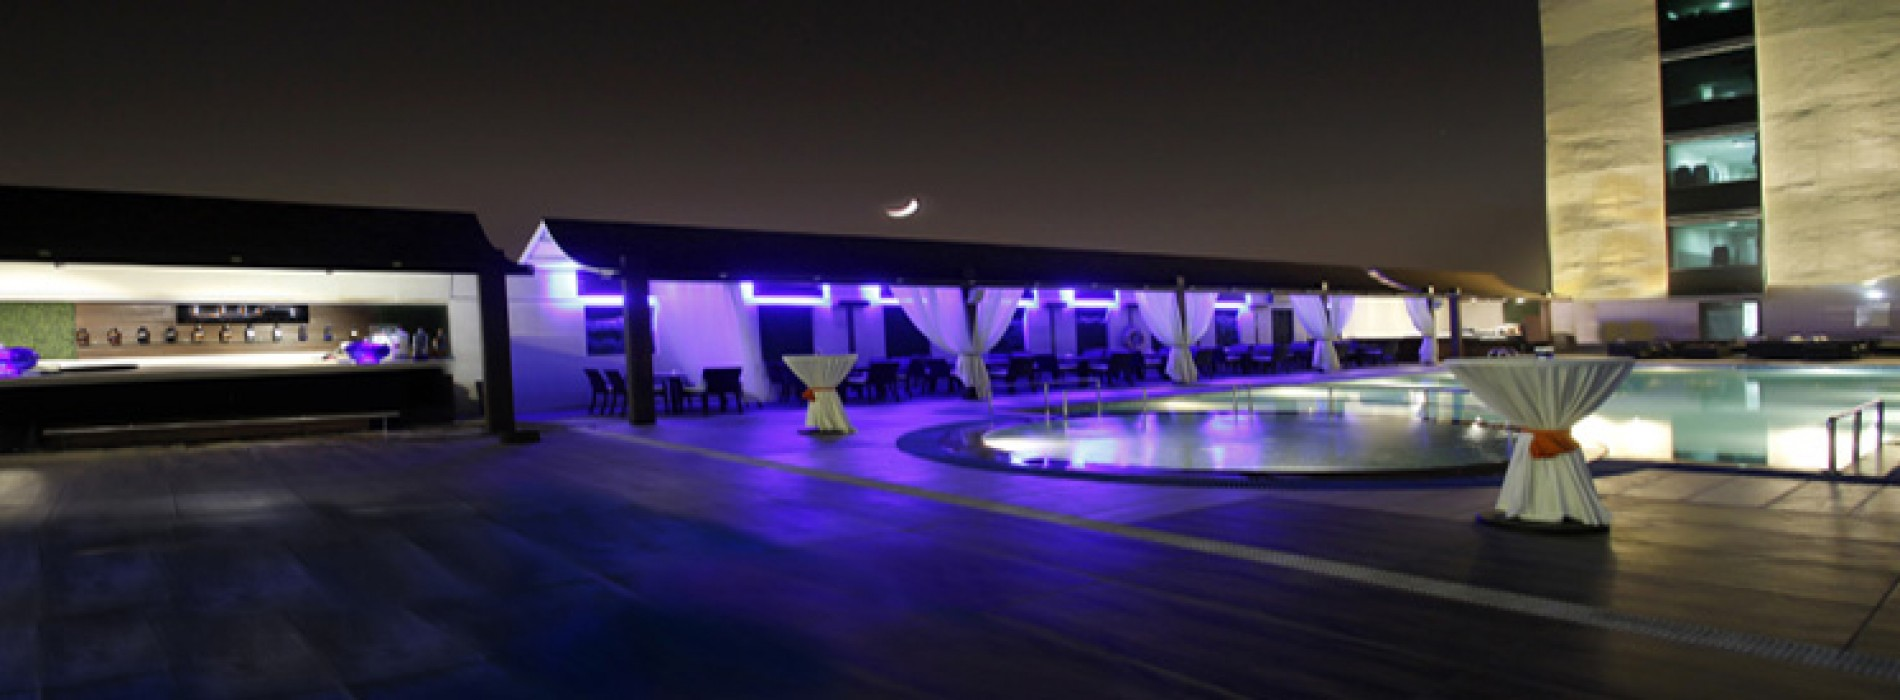 Radisson Blu Hotel Ghaziabad opens Lust by Poolside Bar & Barbeque